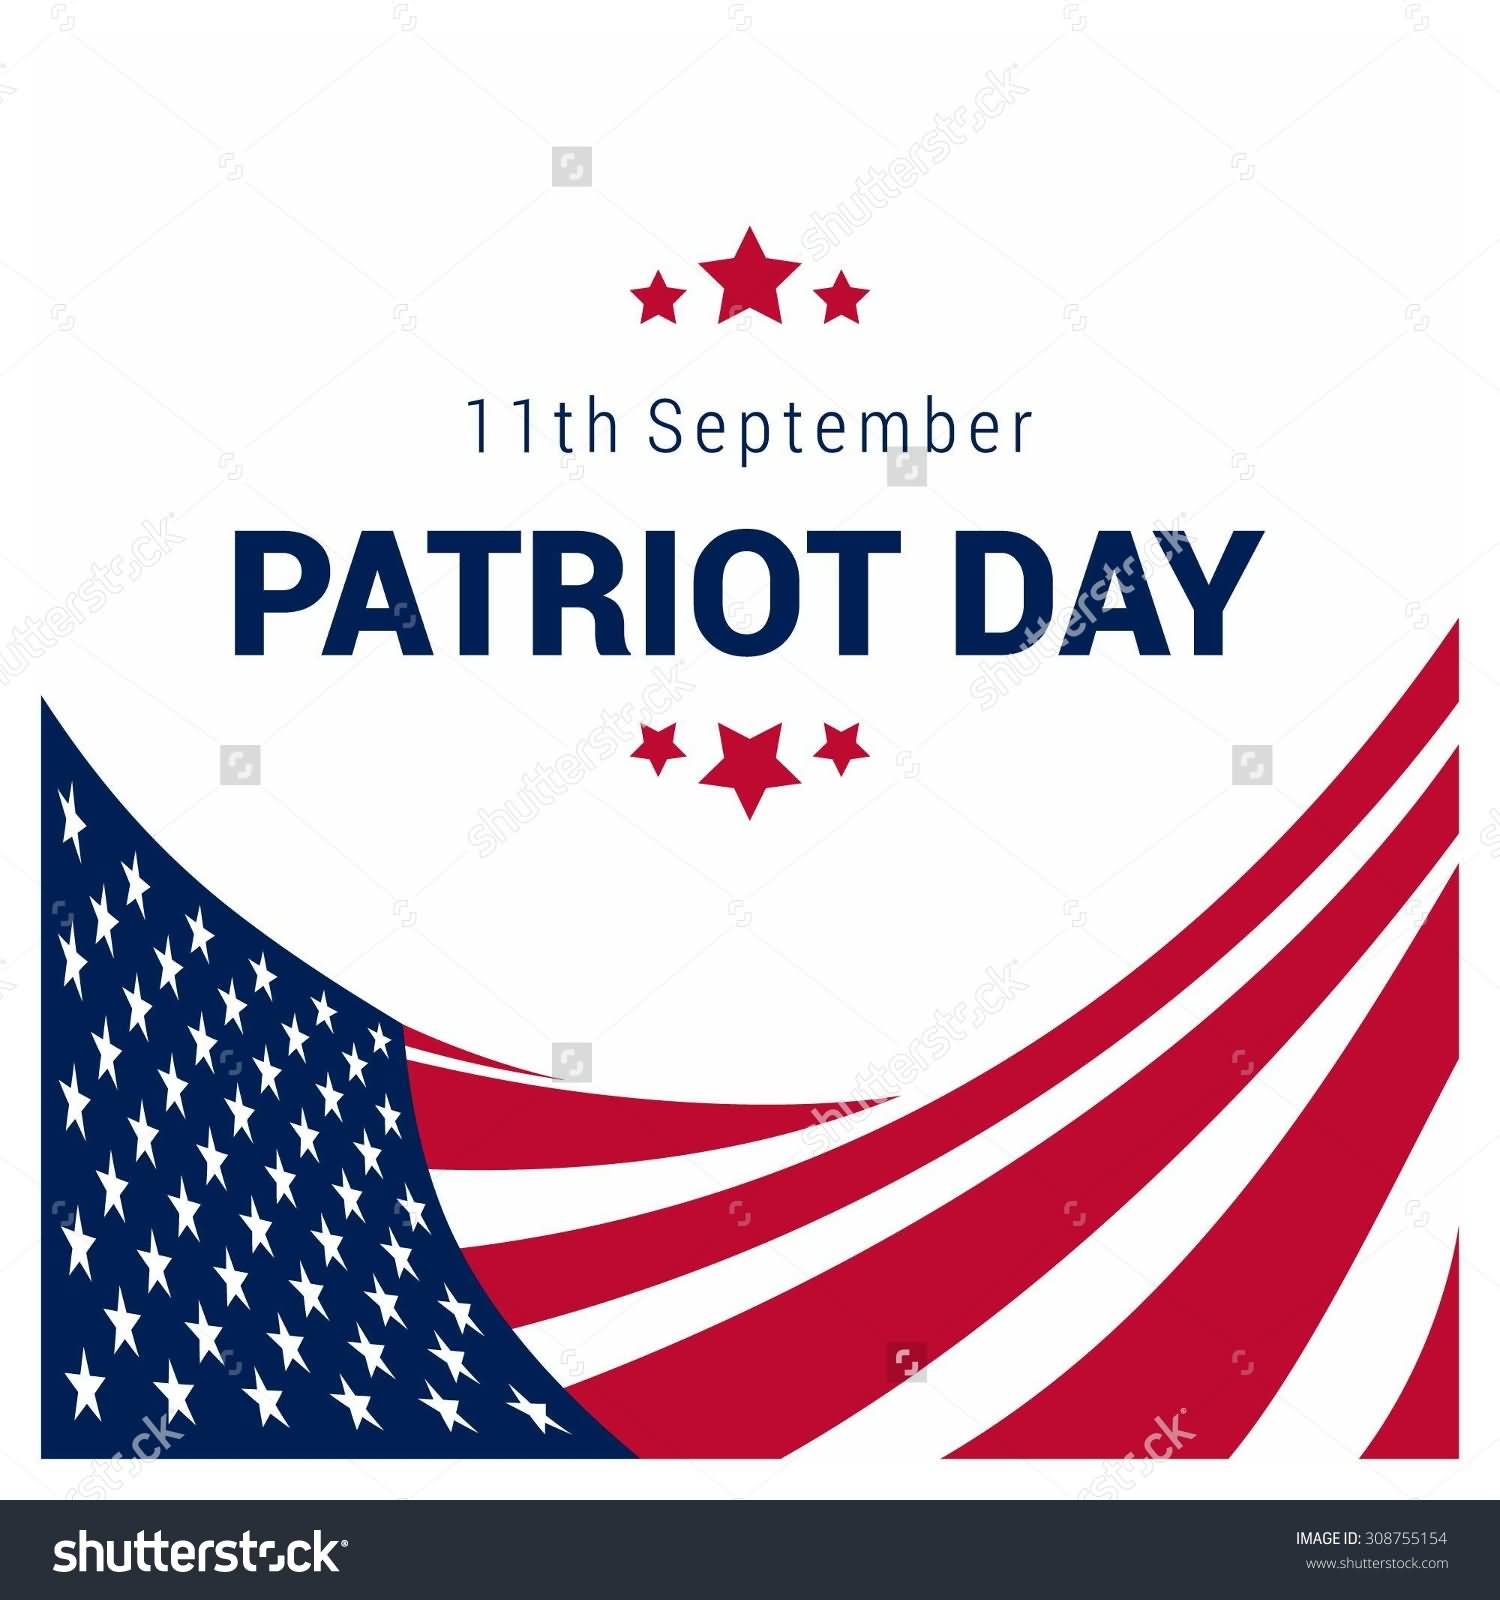 50 Wonderful Patriot Day Wish Pictures And Photos